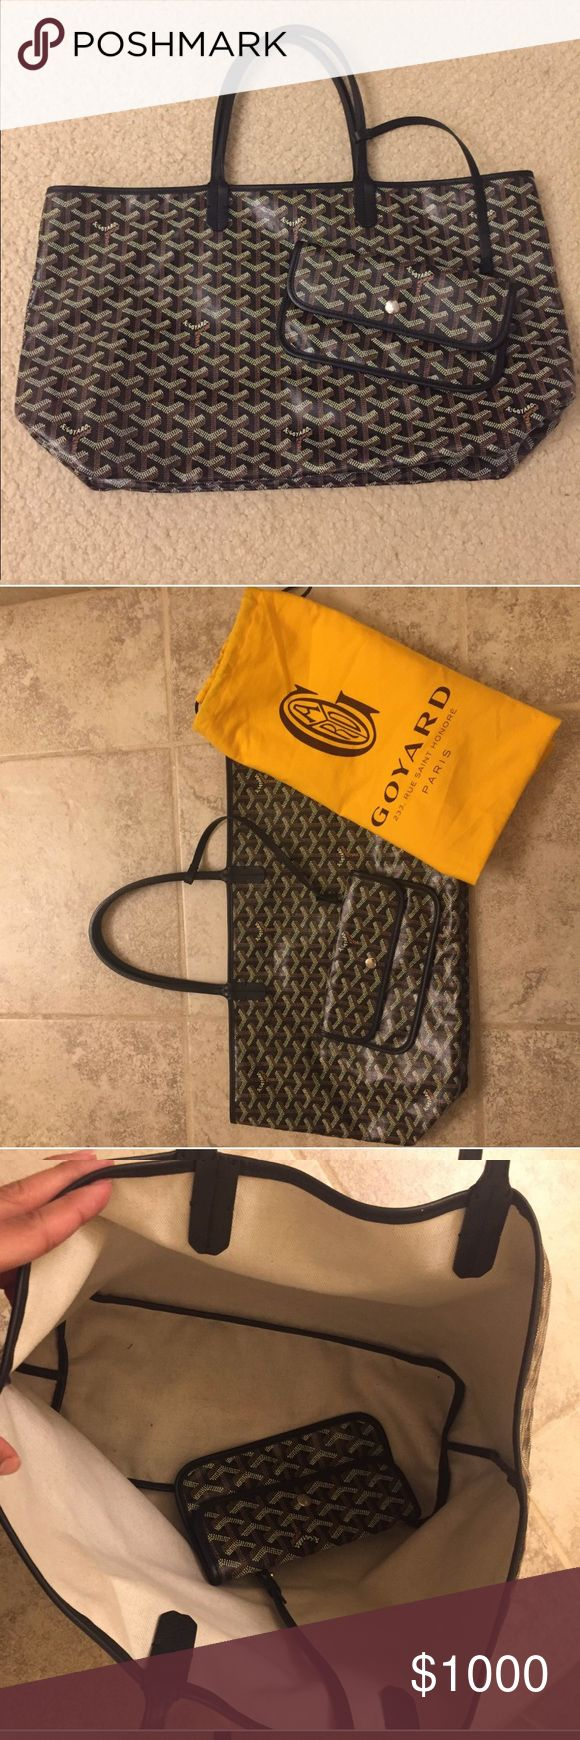 "Authentic Goyard St. Louis PM Goyard Saint Louis Tote PM Measurements: 19 x 6 x 10 inches Color- Black  Description: Gently Used Two shoulder straps with a 7"" drop Small pouch Dust bag included slightly used with no signs of wear or tear There is a small mark inside the bag ( see attached picture) Made in France Goyard Bags Totes"